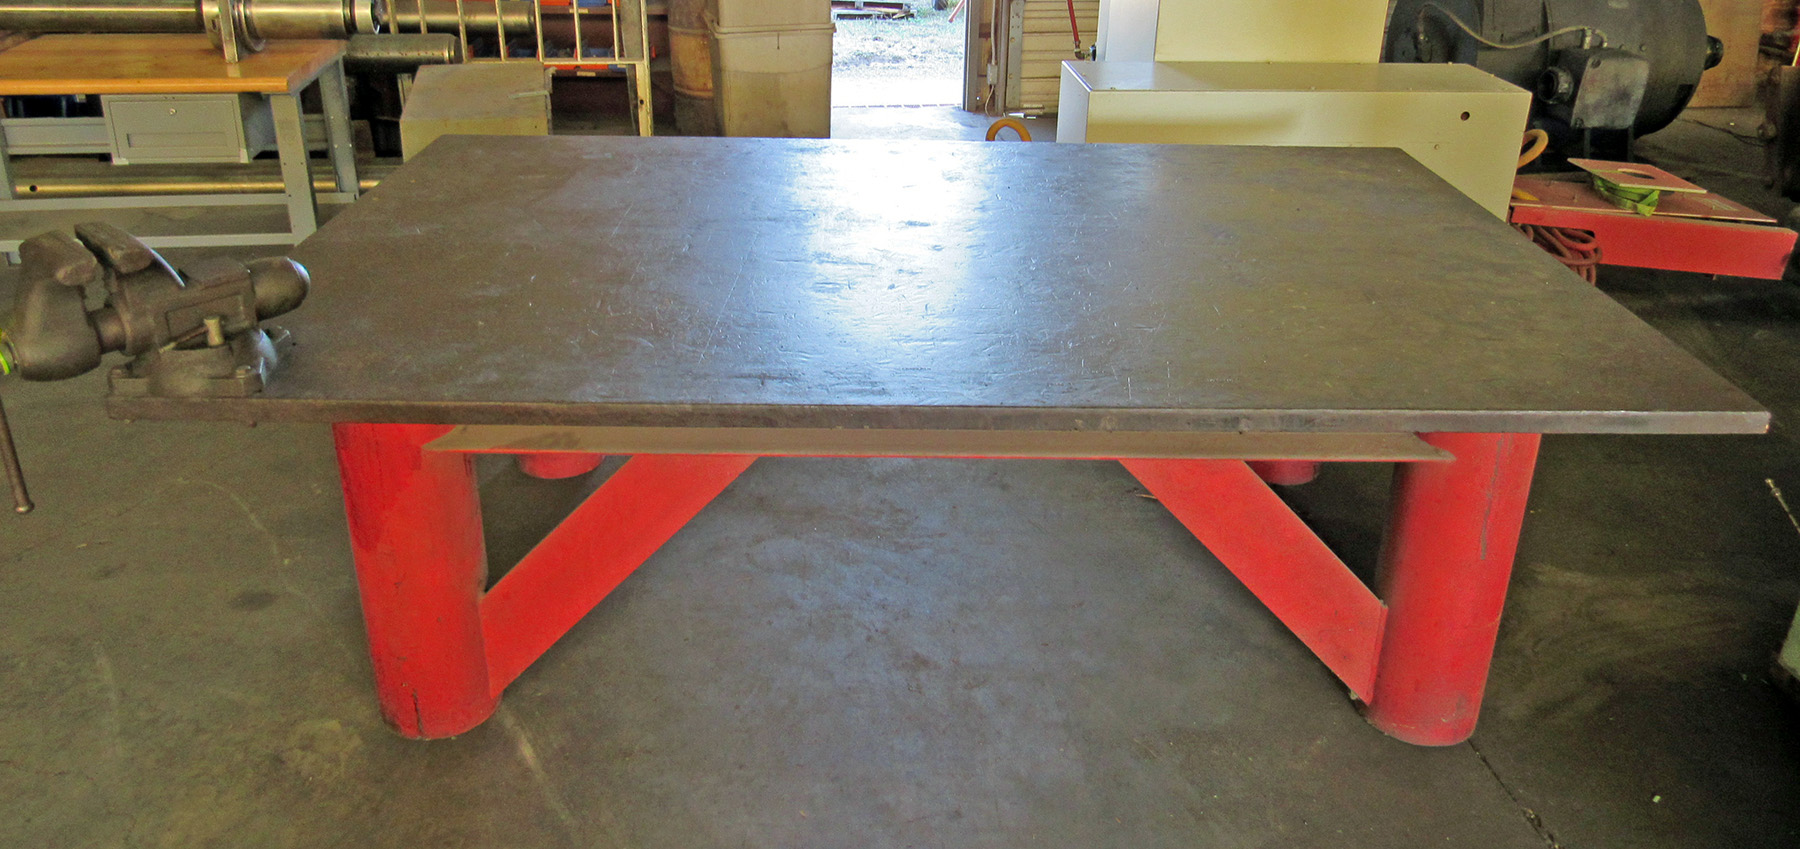 "USED, 96"" X 60"" X 30"" HIGH HEAVY DUTY STEEL TABLE WITH VISE"